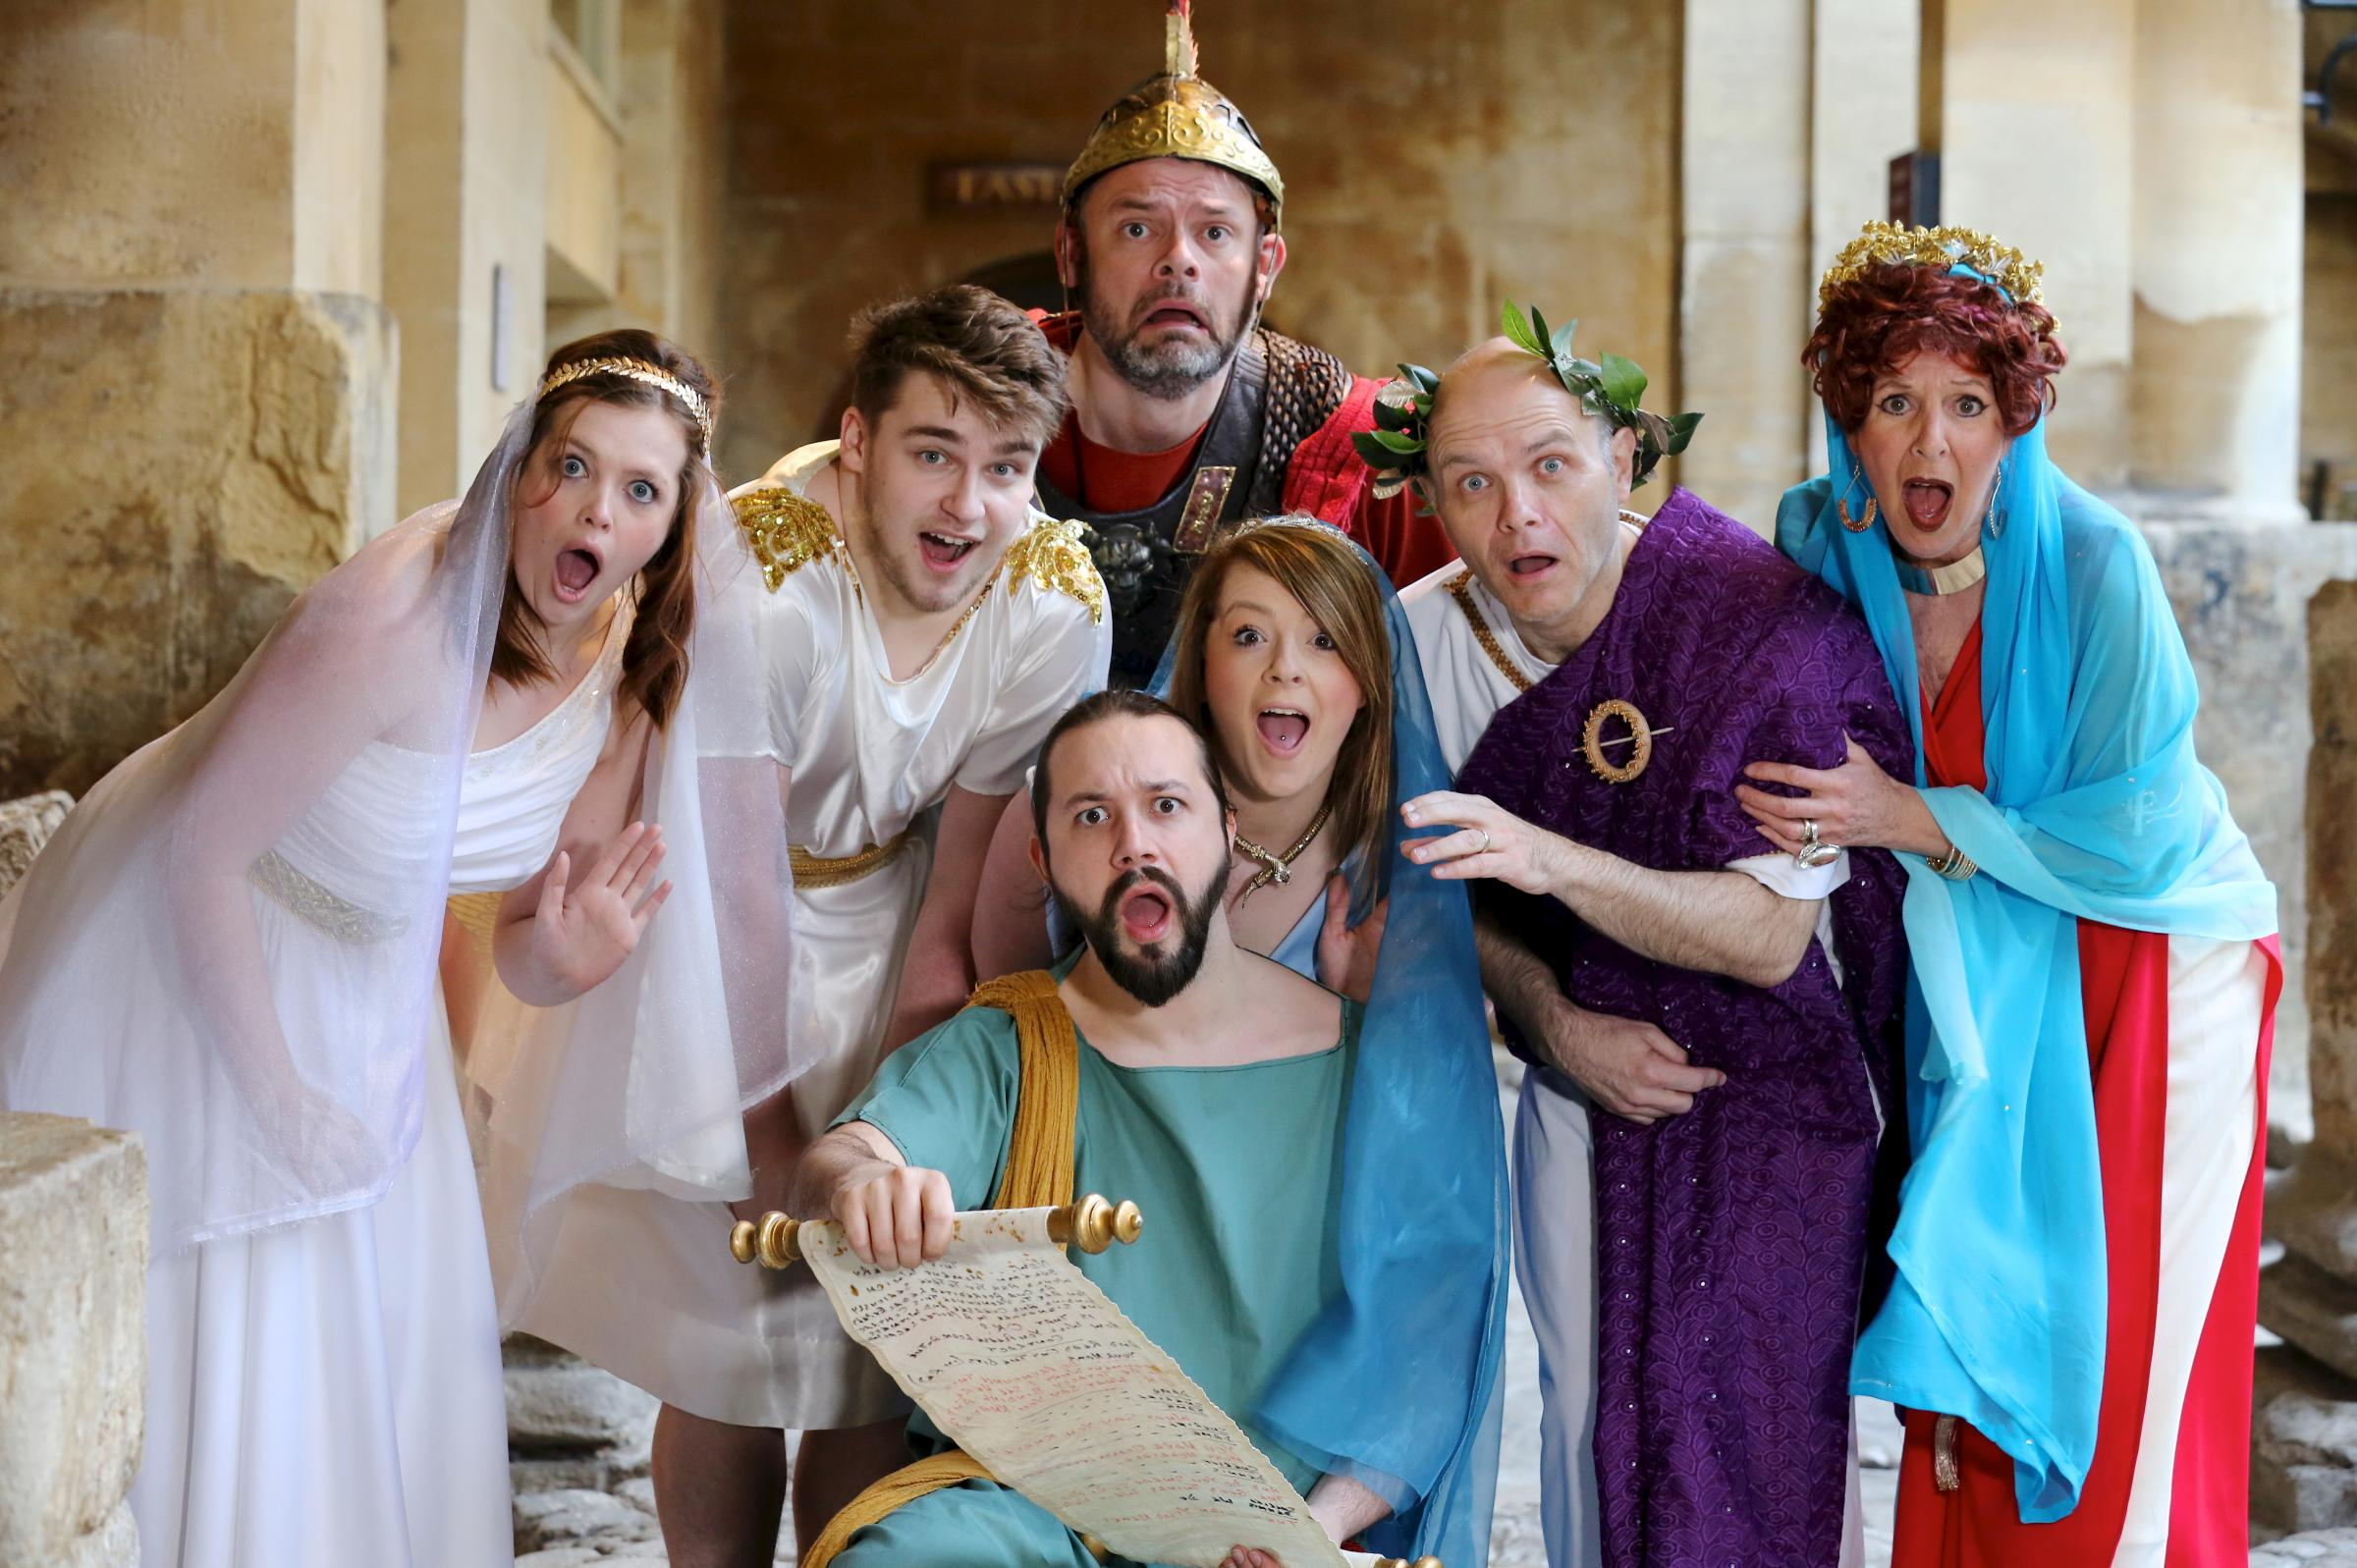 The Wharf Theatre cast get into character at the Roman Baths